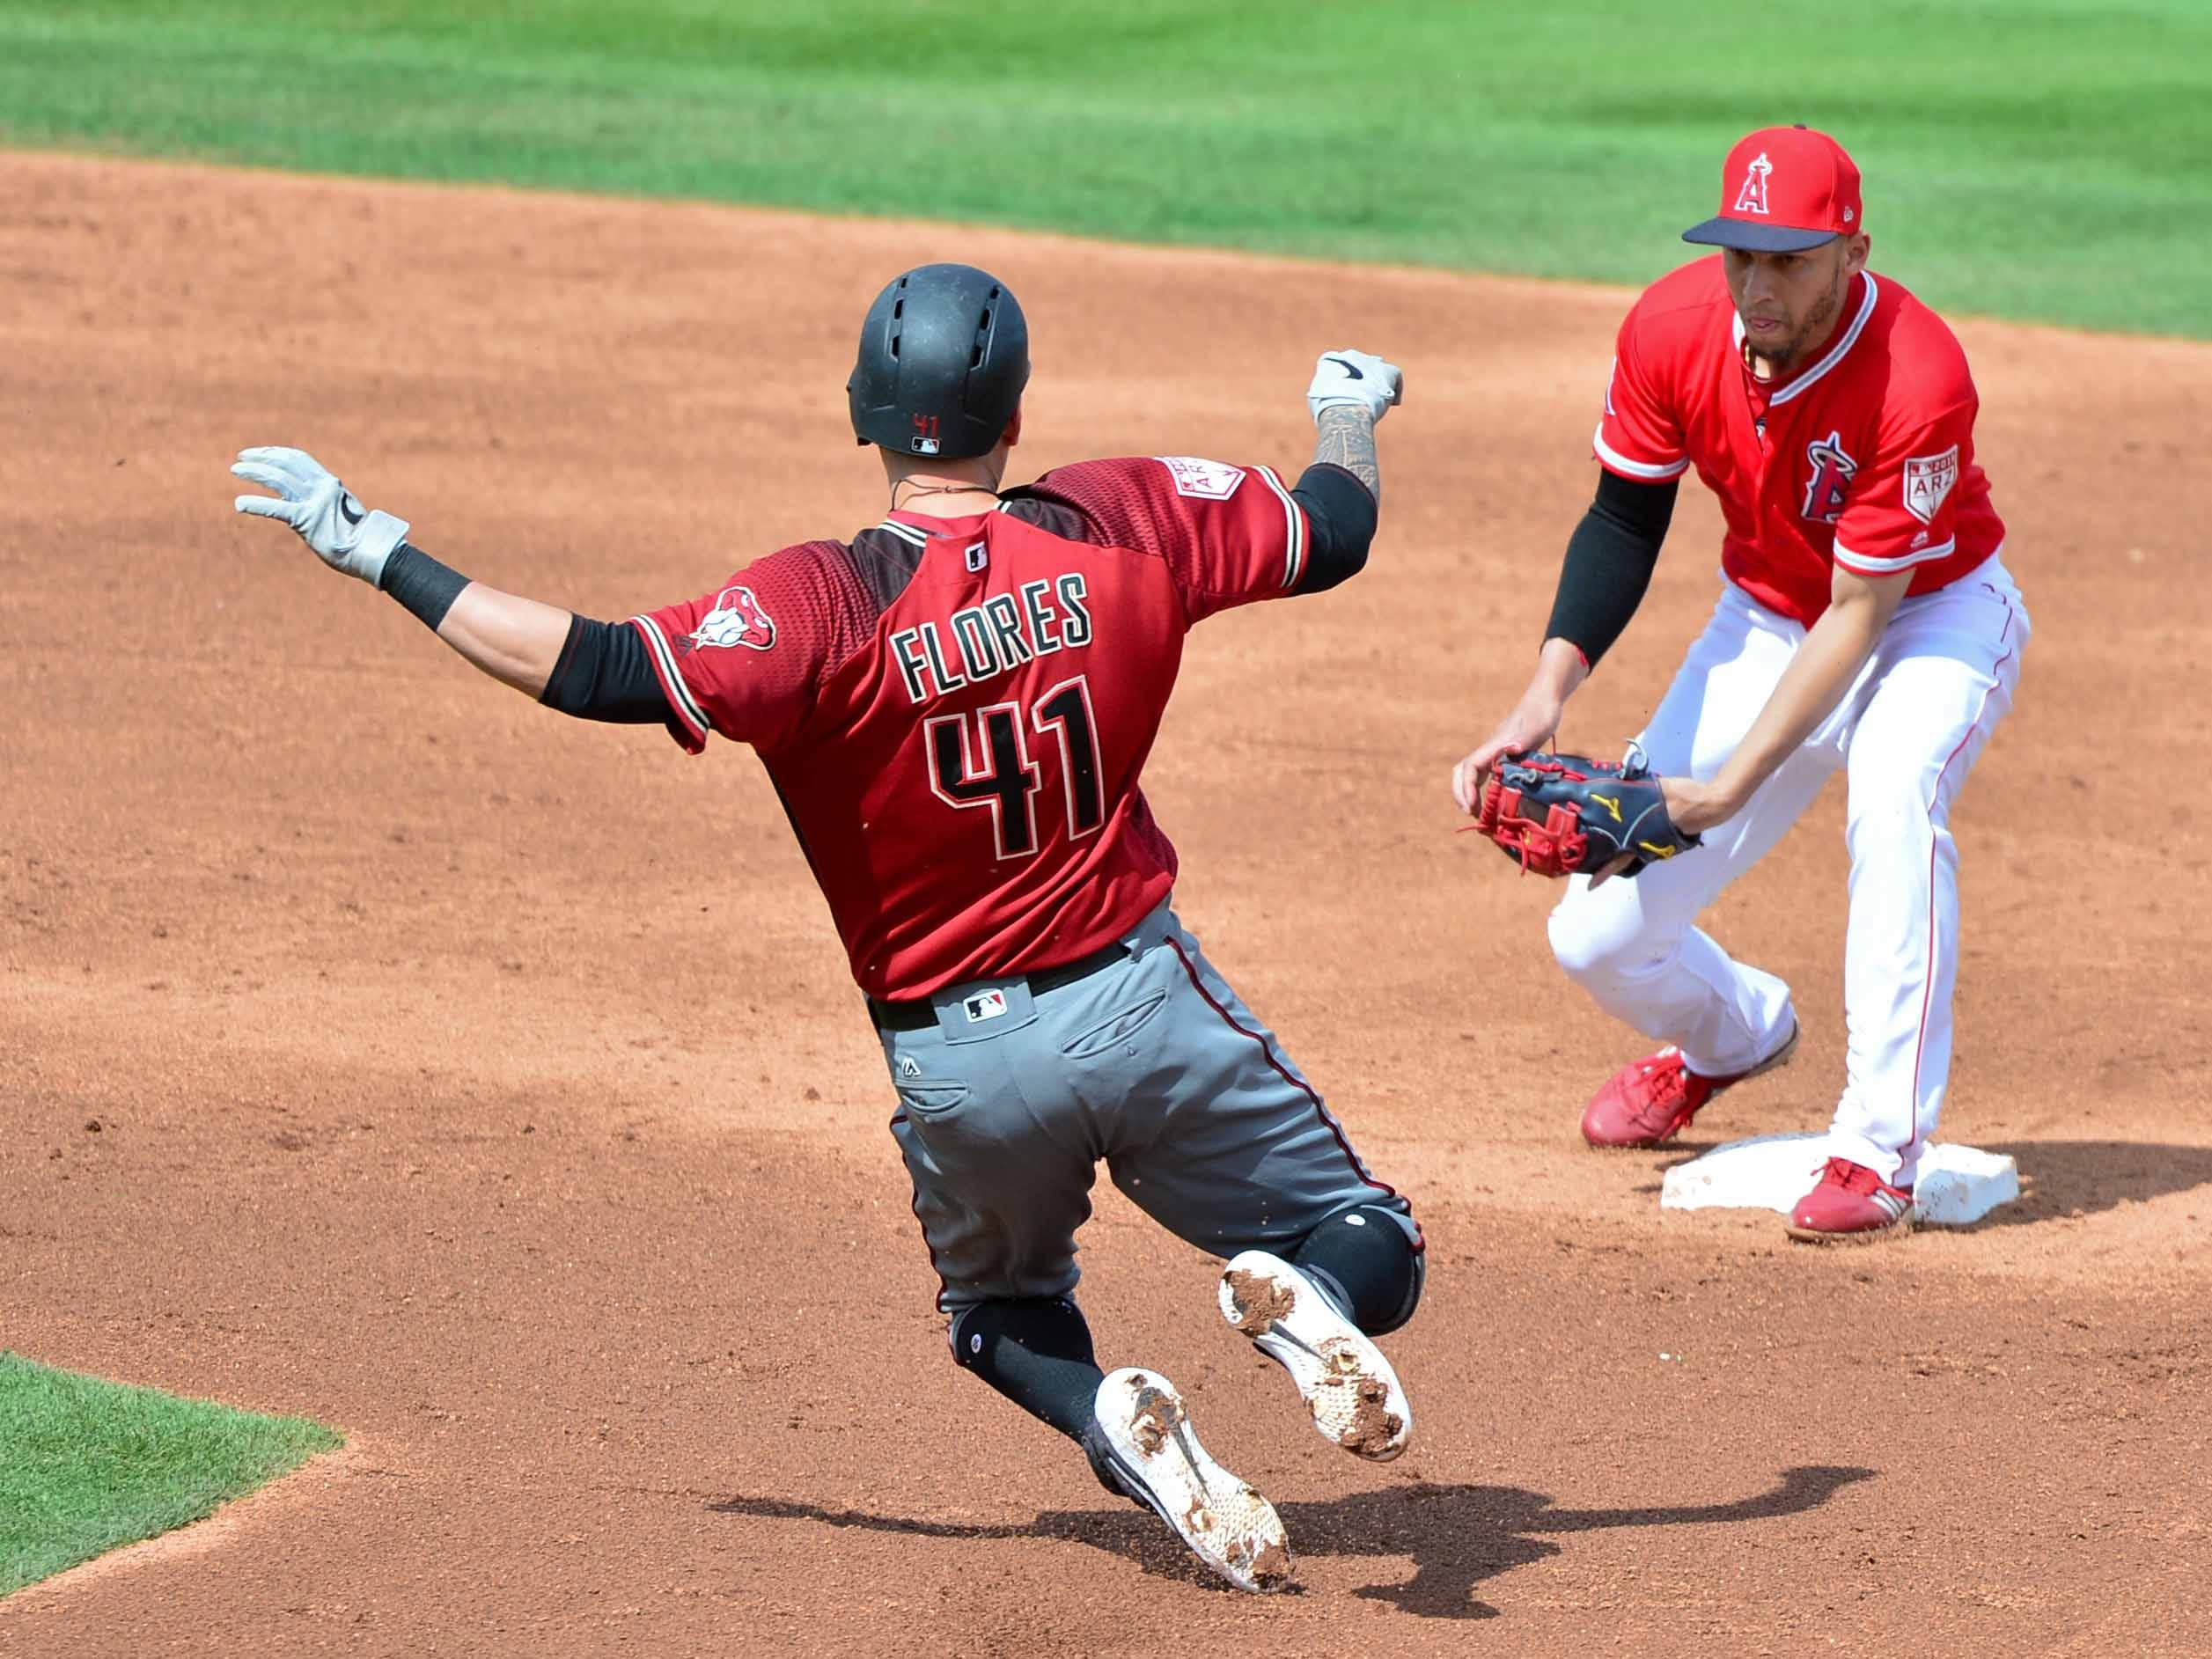 Mar 15, 2019; Tempe, AZ, USA; Arizona Diamondbacks third baseman Wilmer Flores (41) is out by Los Angeles Angels shortstop Andrelton Simmons (2) while stealing second base during the third inning at Tempe Diablo Stadium. Mandatory Credit: Matt Kartozian-USA TODAY Sports